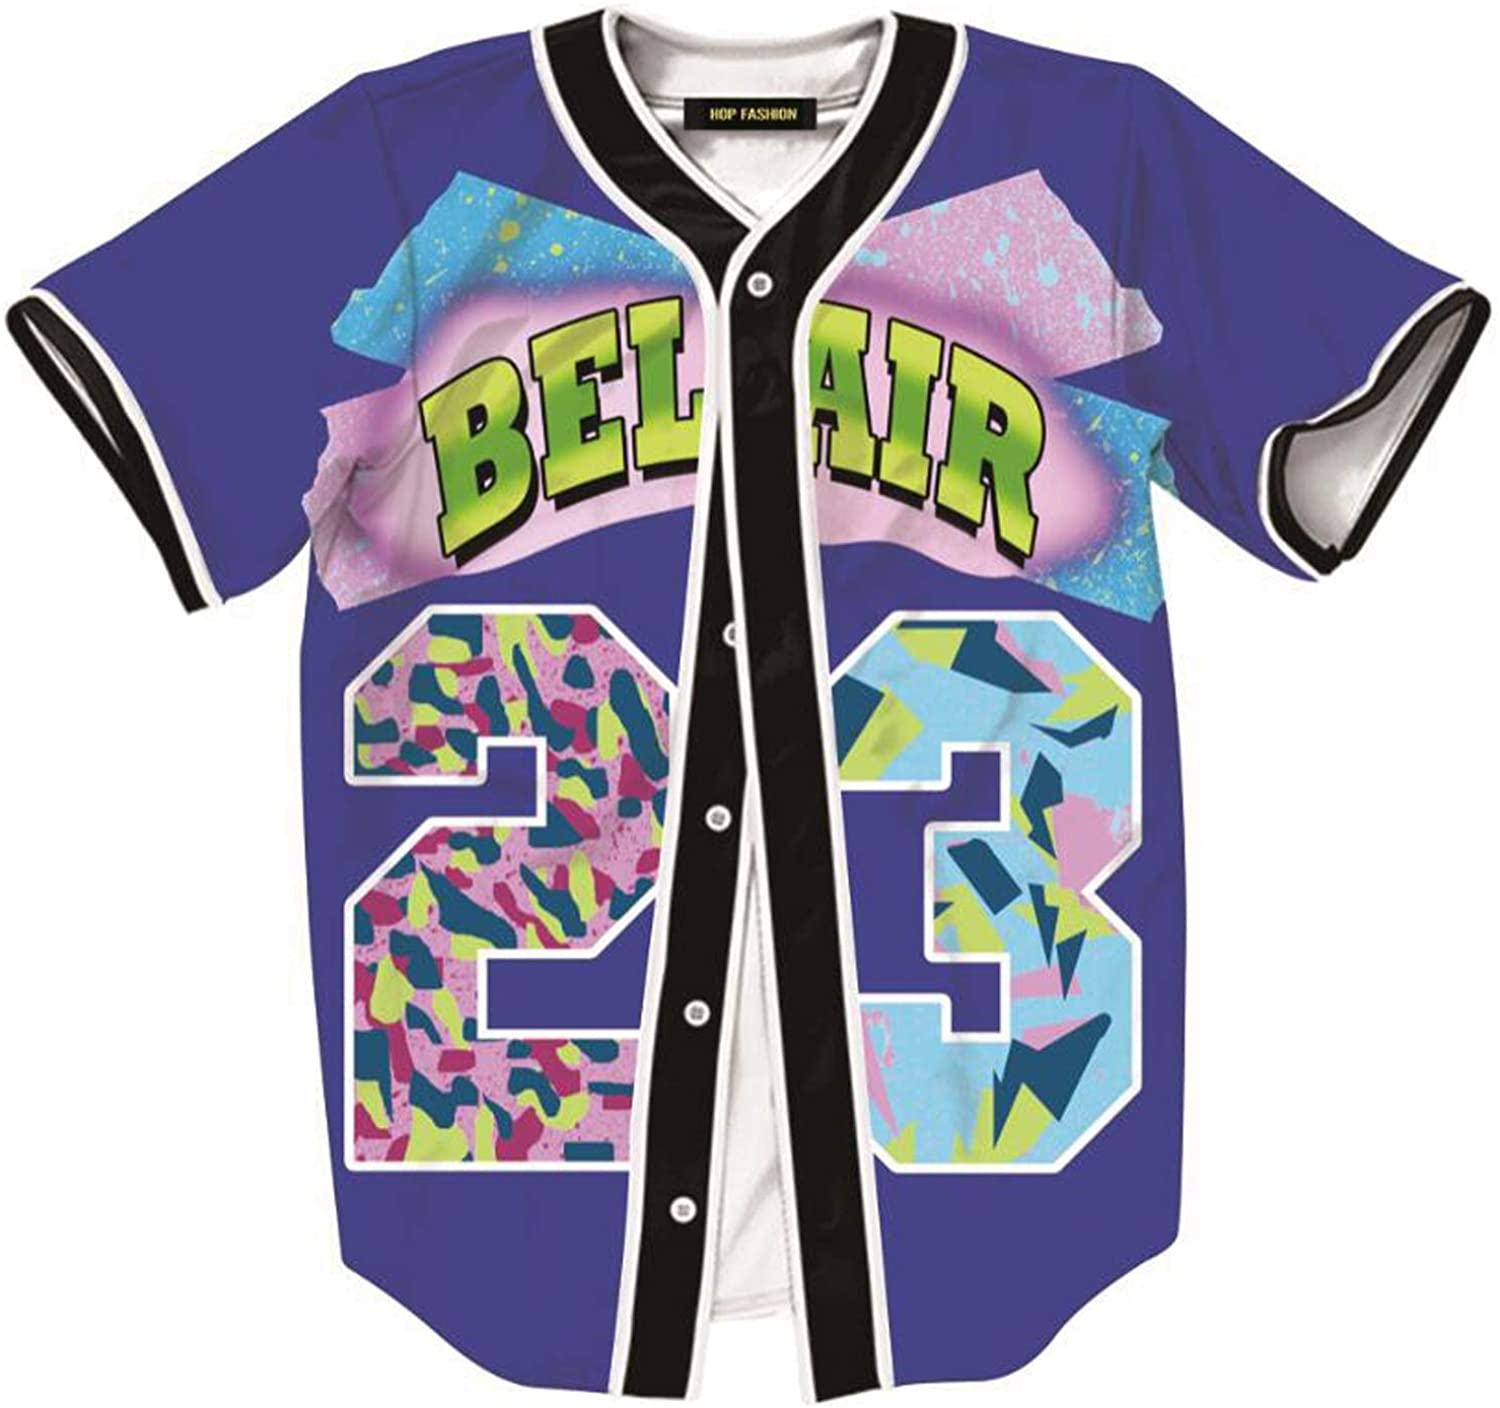 HOP FASHION Unisex 90s Bel Air Baseball Jersey Short Sleeve Tops for Birthday Party